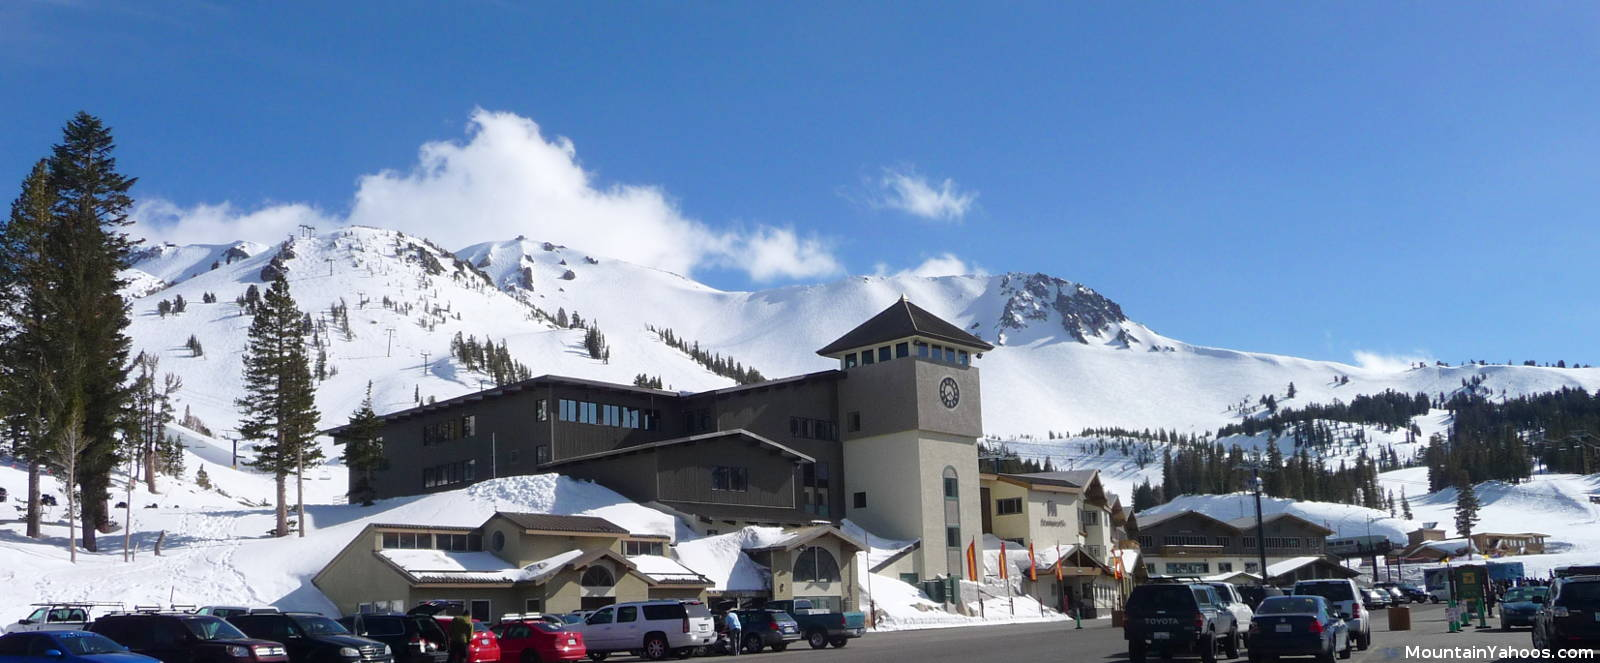 mammoth mountain california (us) ski resort review and guide